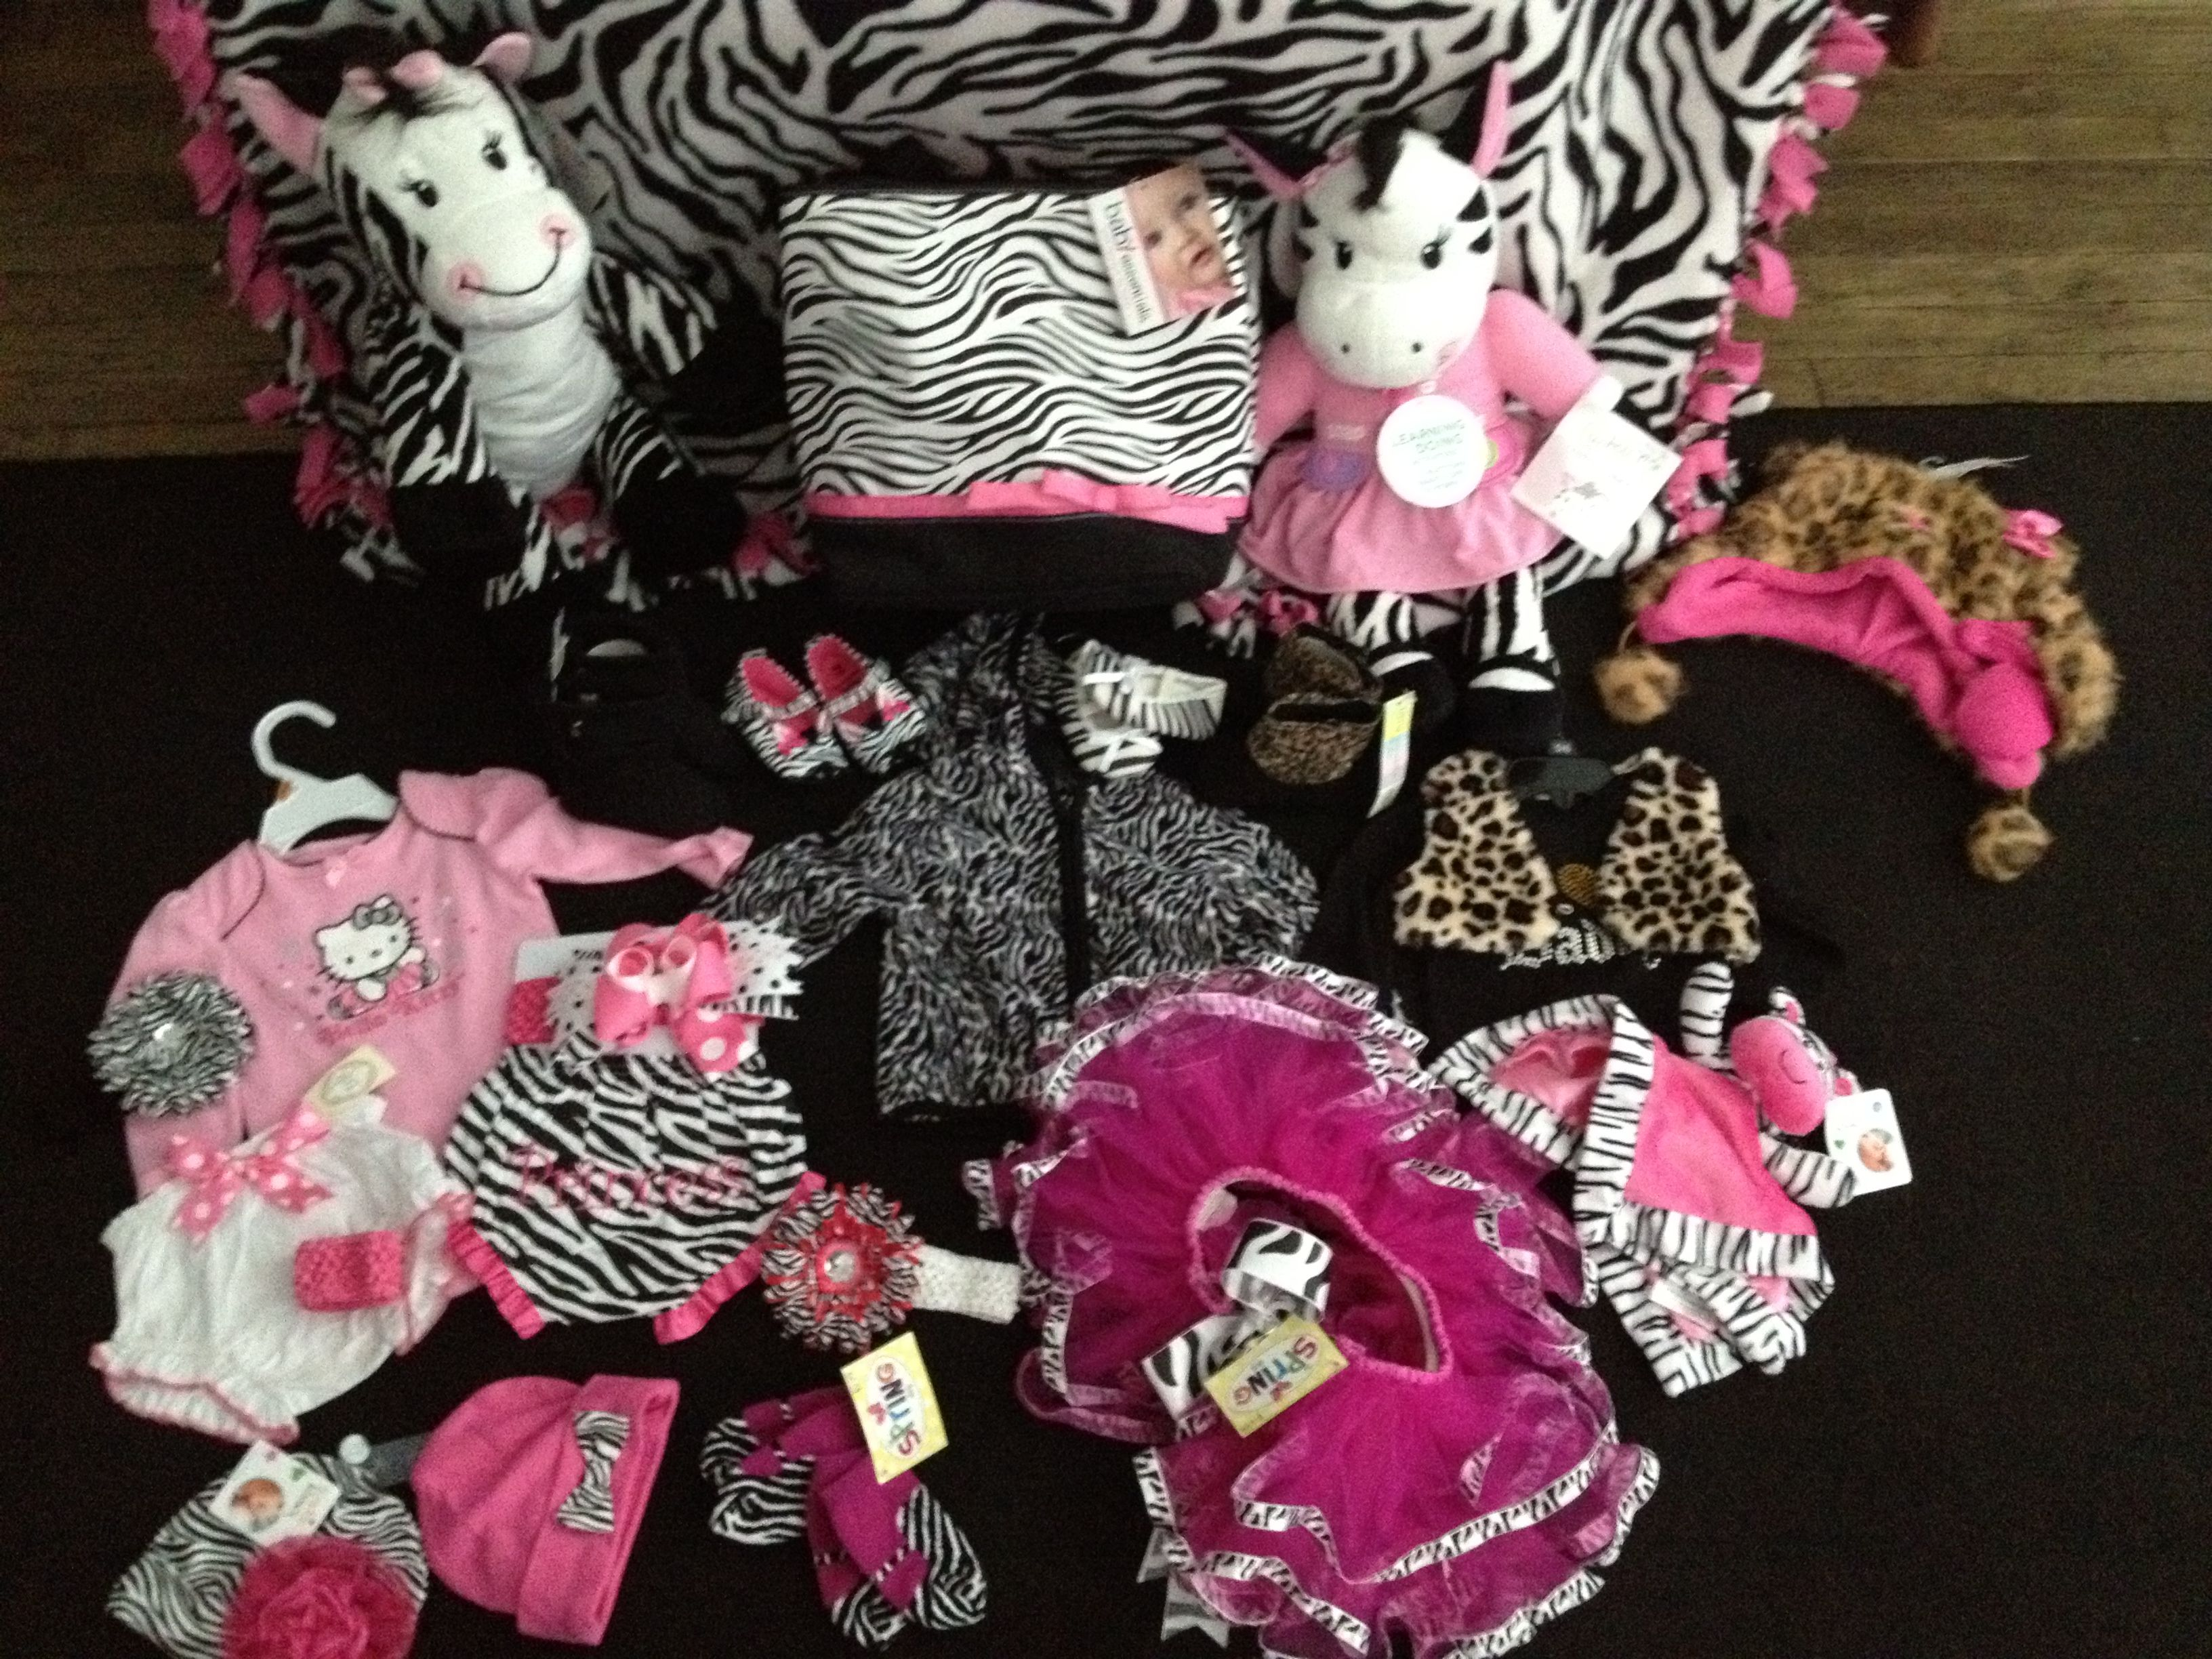 Zebra print zebra print ideas baby shower babyroom for Animal print baby shower decoration ideas